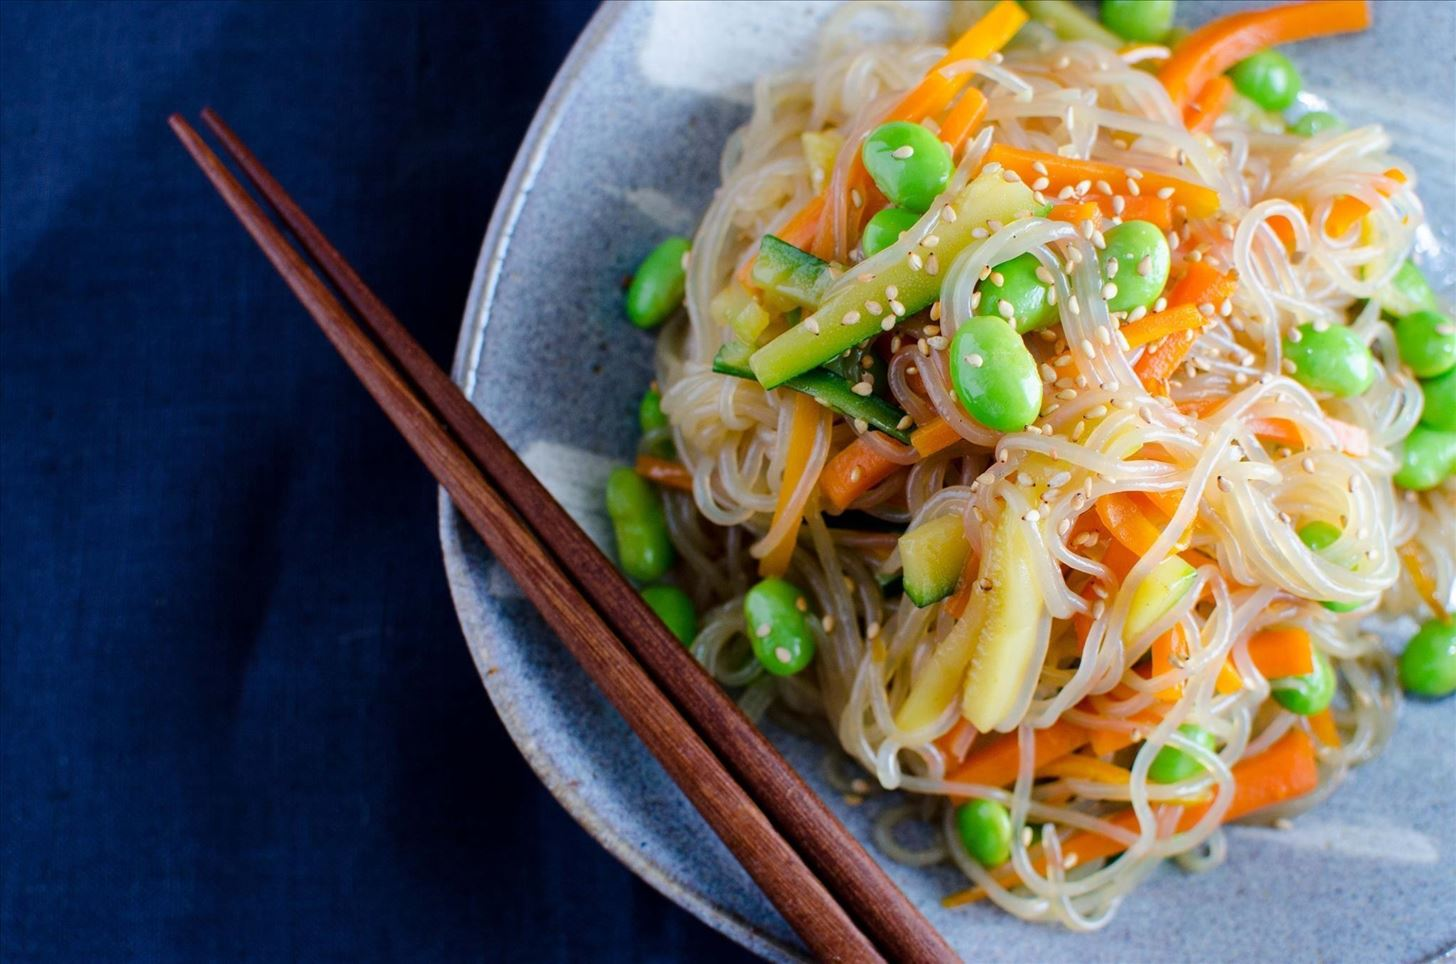 Rice Noodles with Tomatoes and Tuna - A Savoury Gluten-free Alternative to Pasta